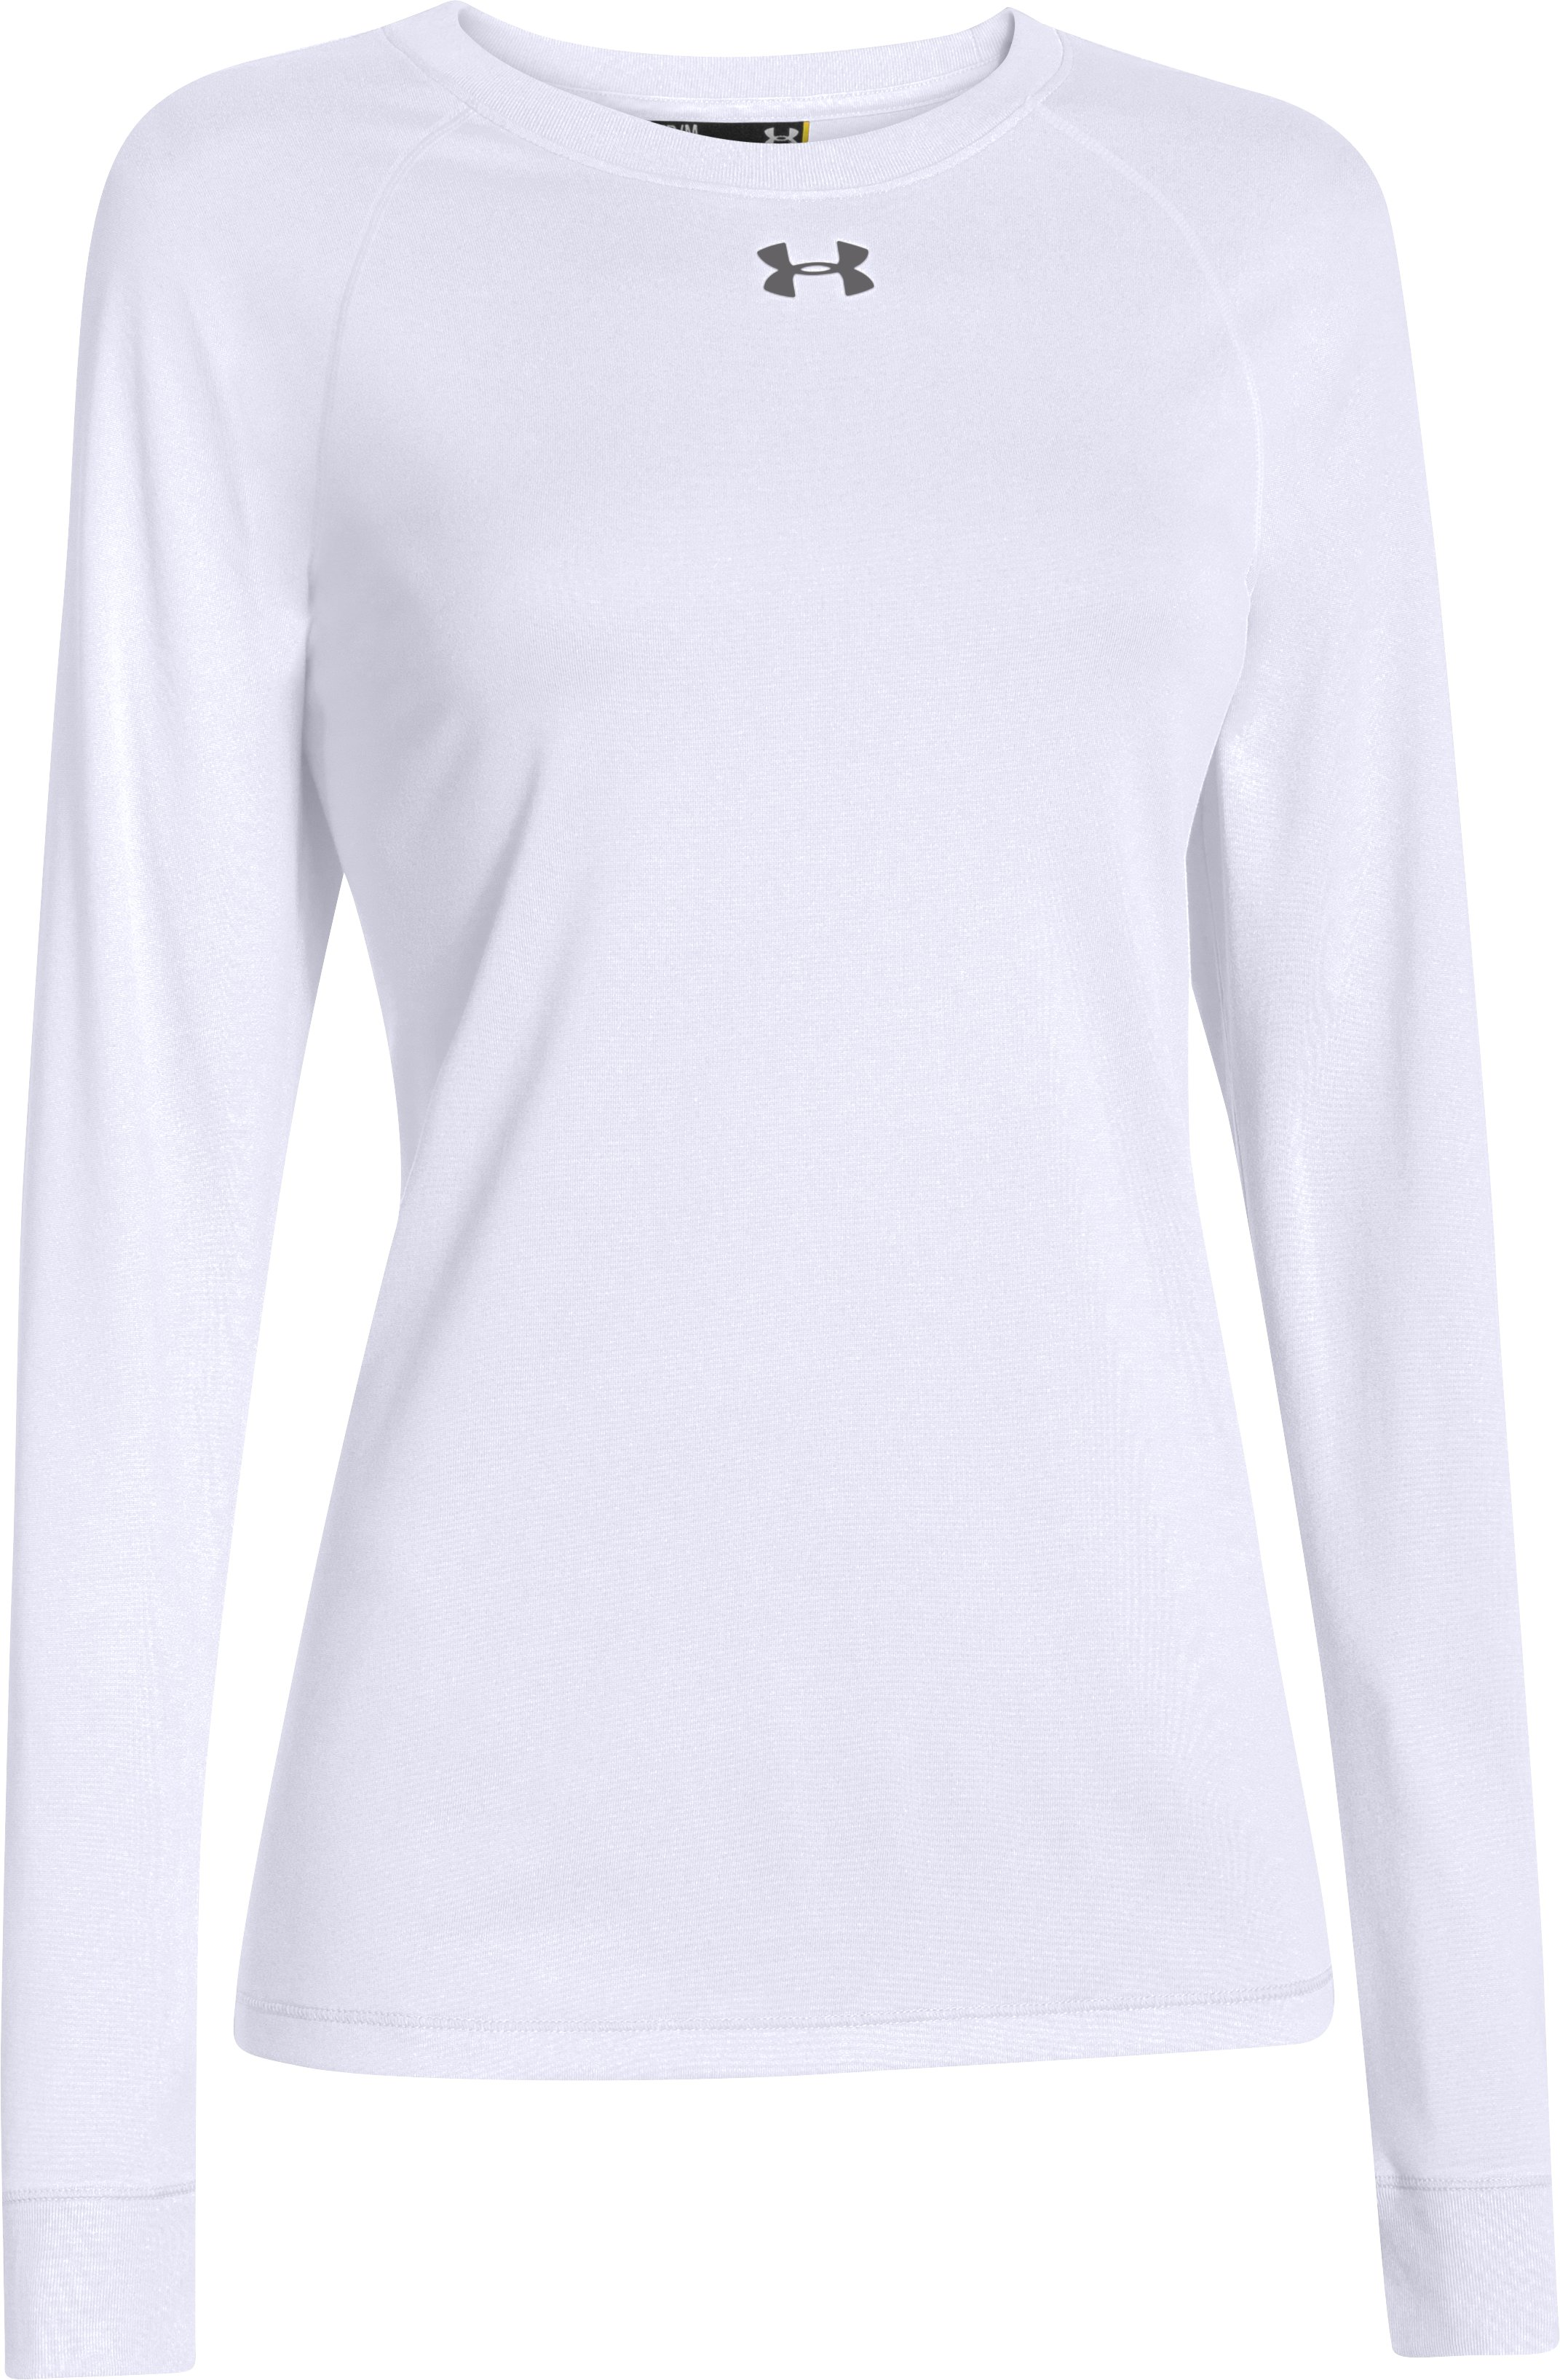 Women's Locker Long Sleeve T-Shirt, White,